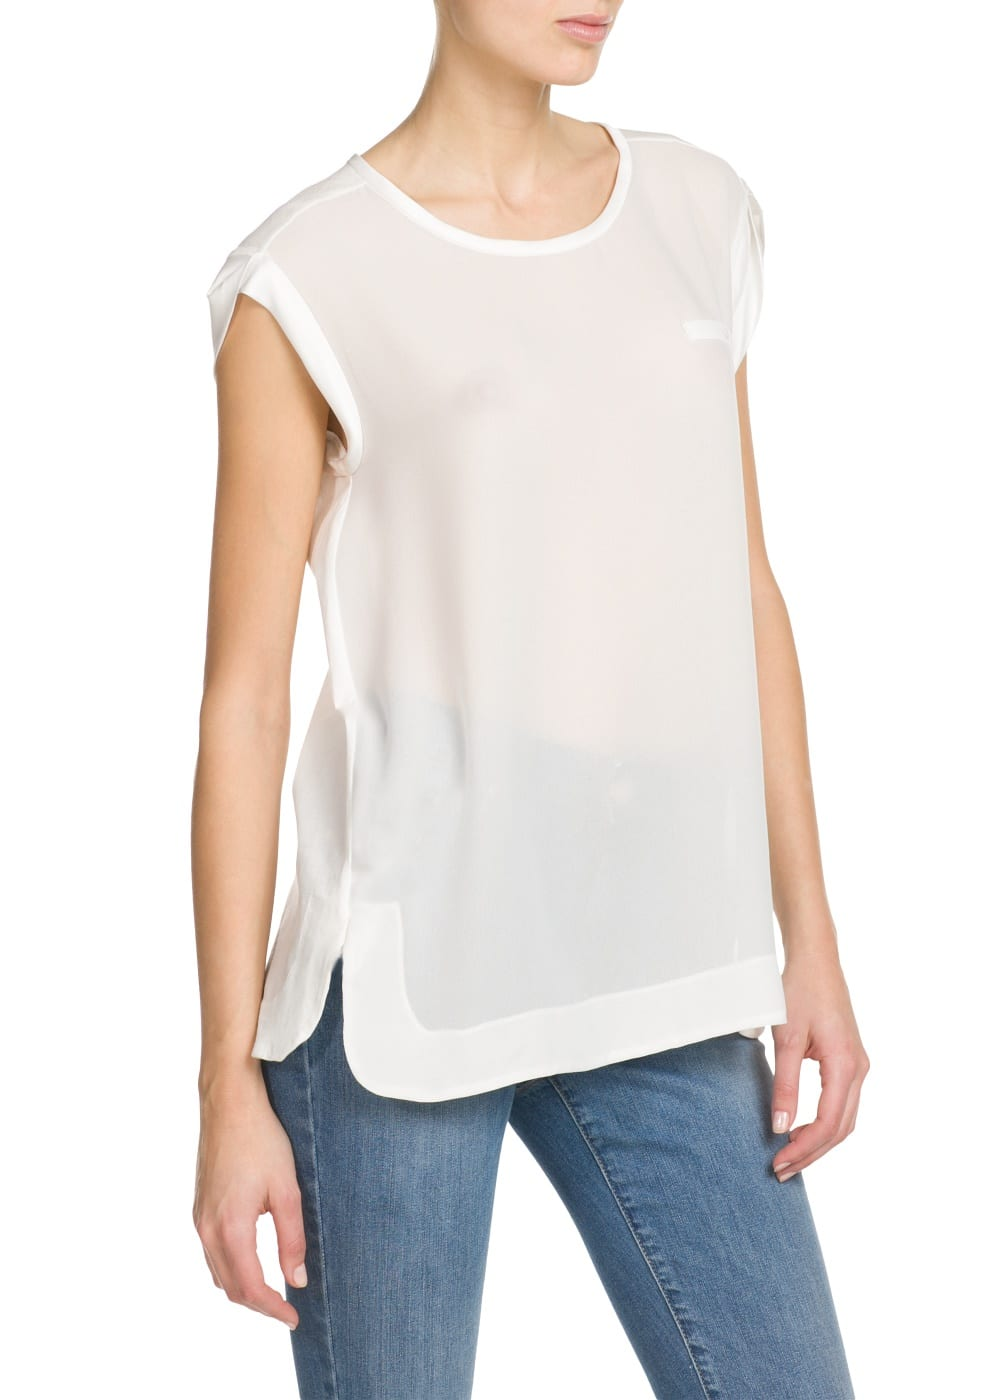 Satin appliqué t-shirt